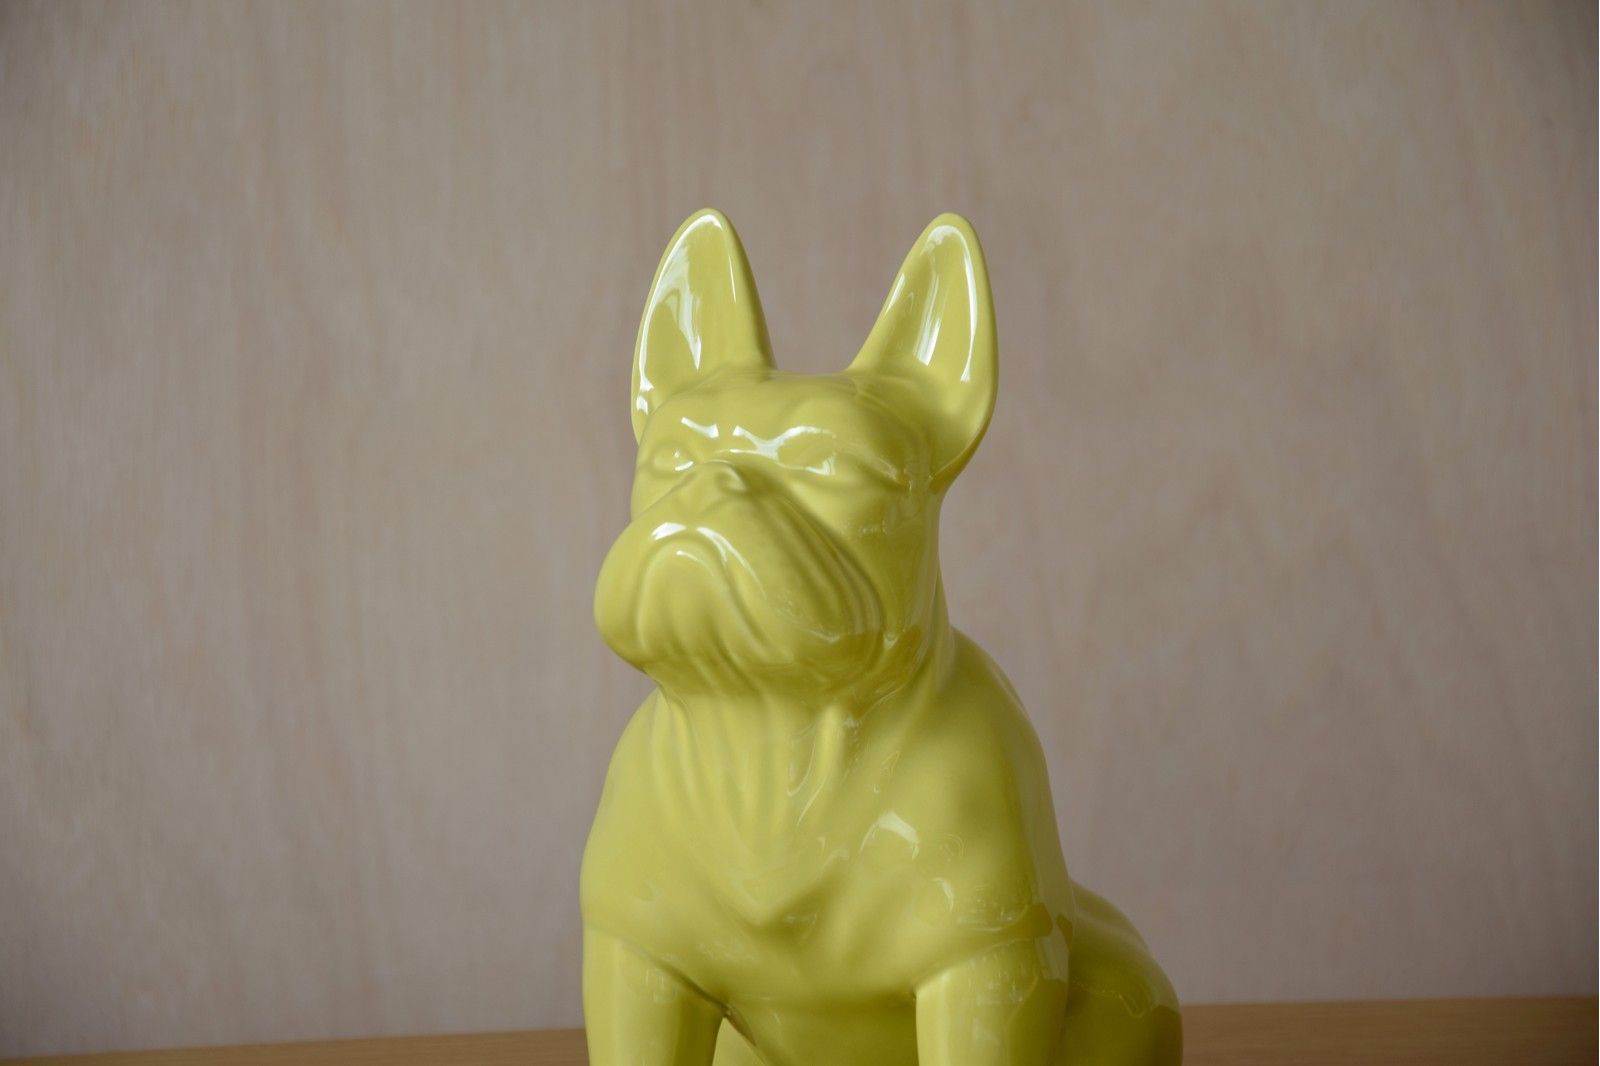 BULLDOG SCULPTURE. CERAMIC YELLOW. LARGE